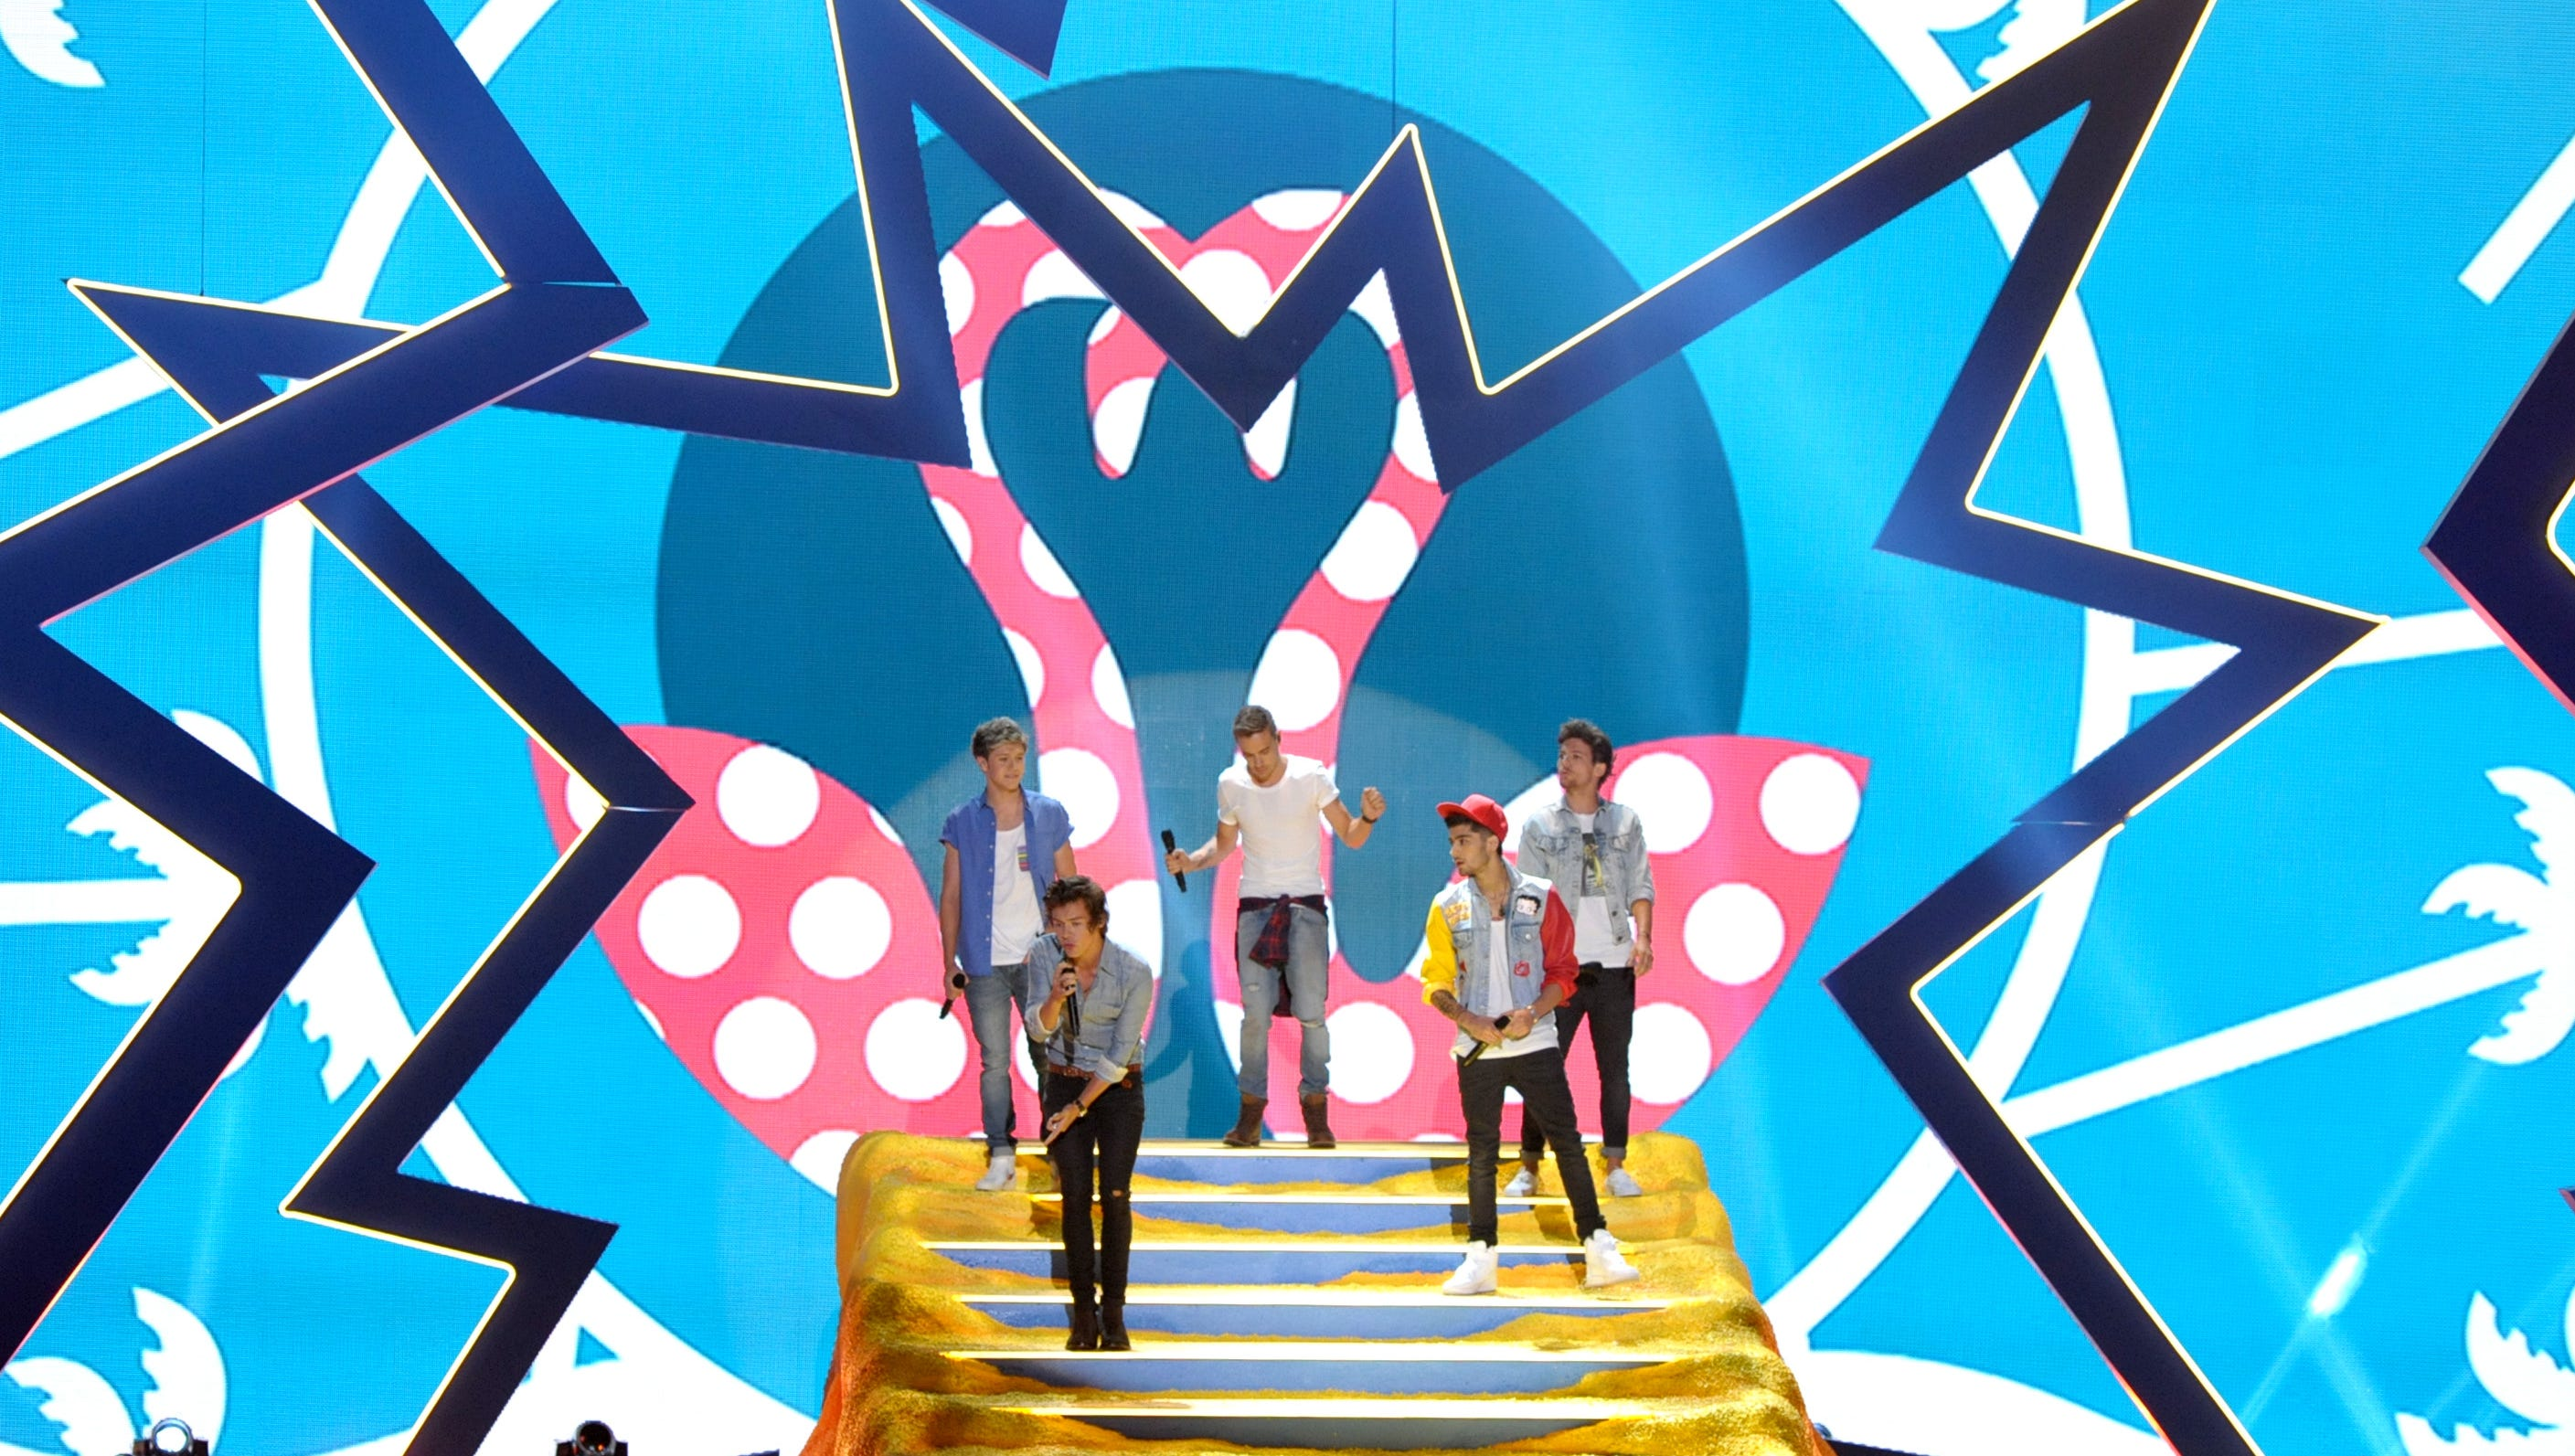 Niall Horan, from left, Harry Styles, Liam Payne, Zayn Malik and Louis Tomlinson of the musical group One Direction perform.